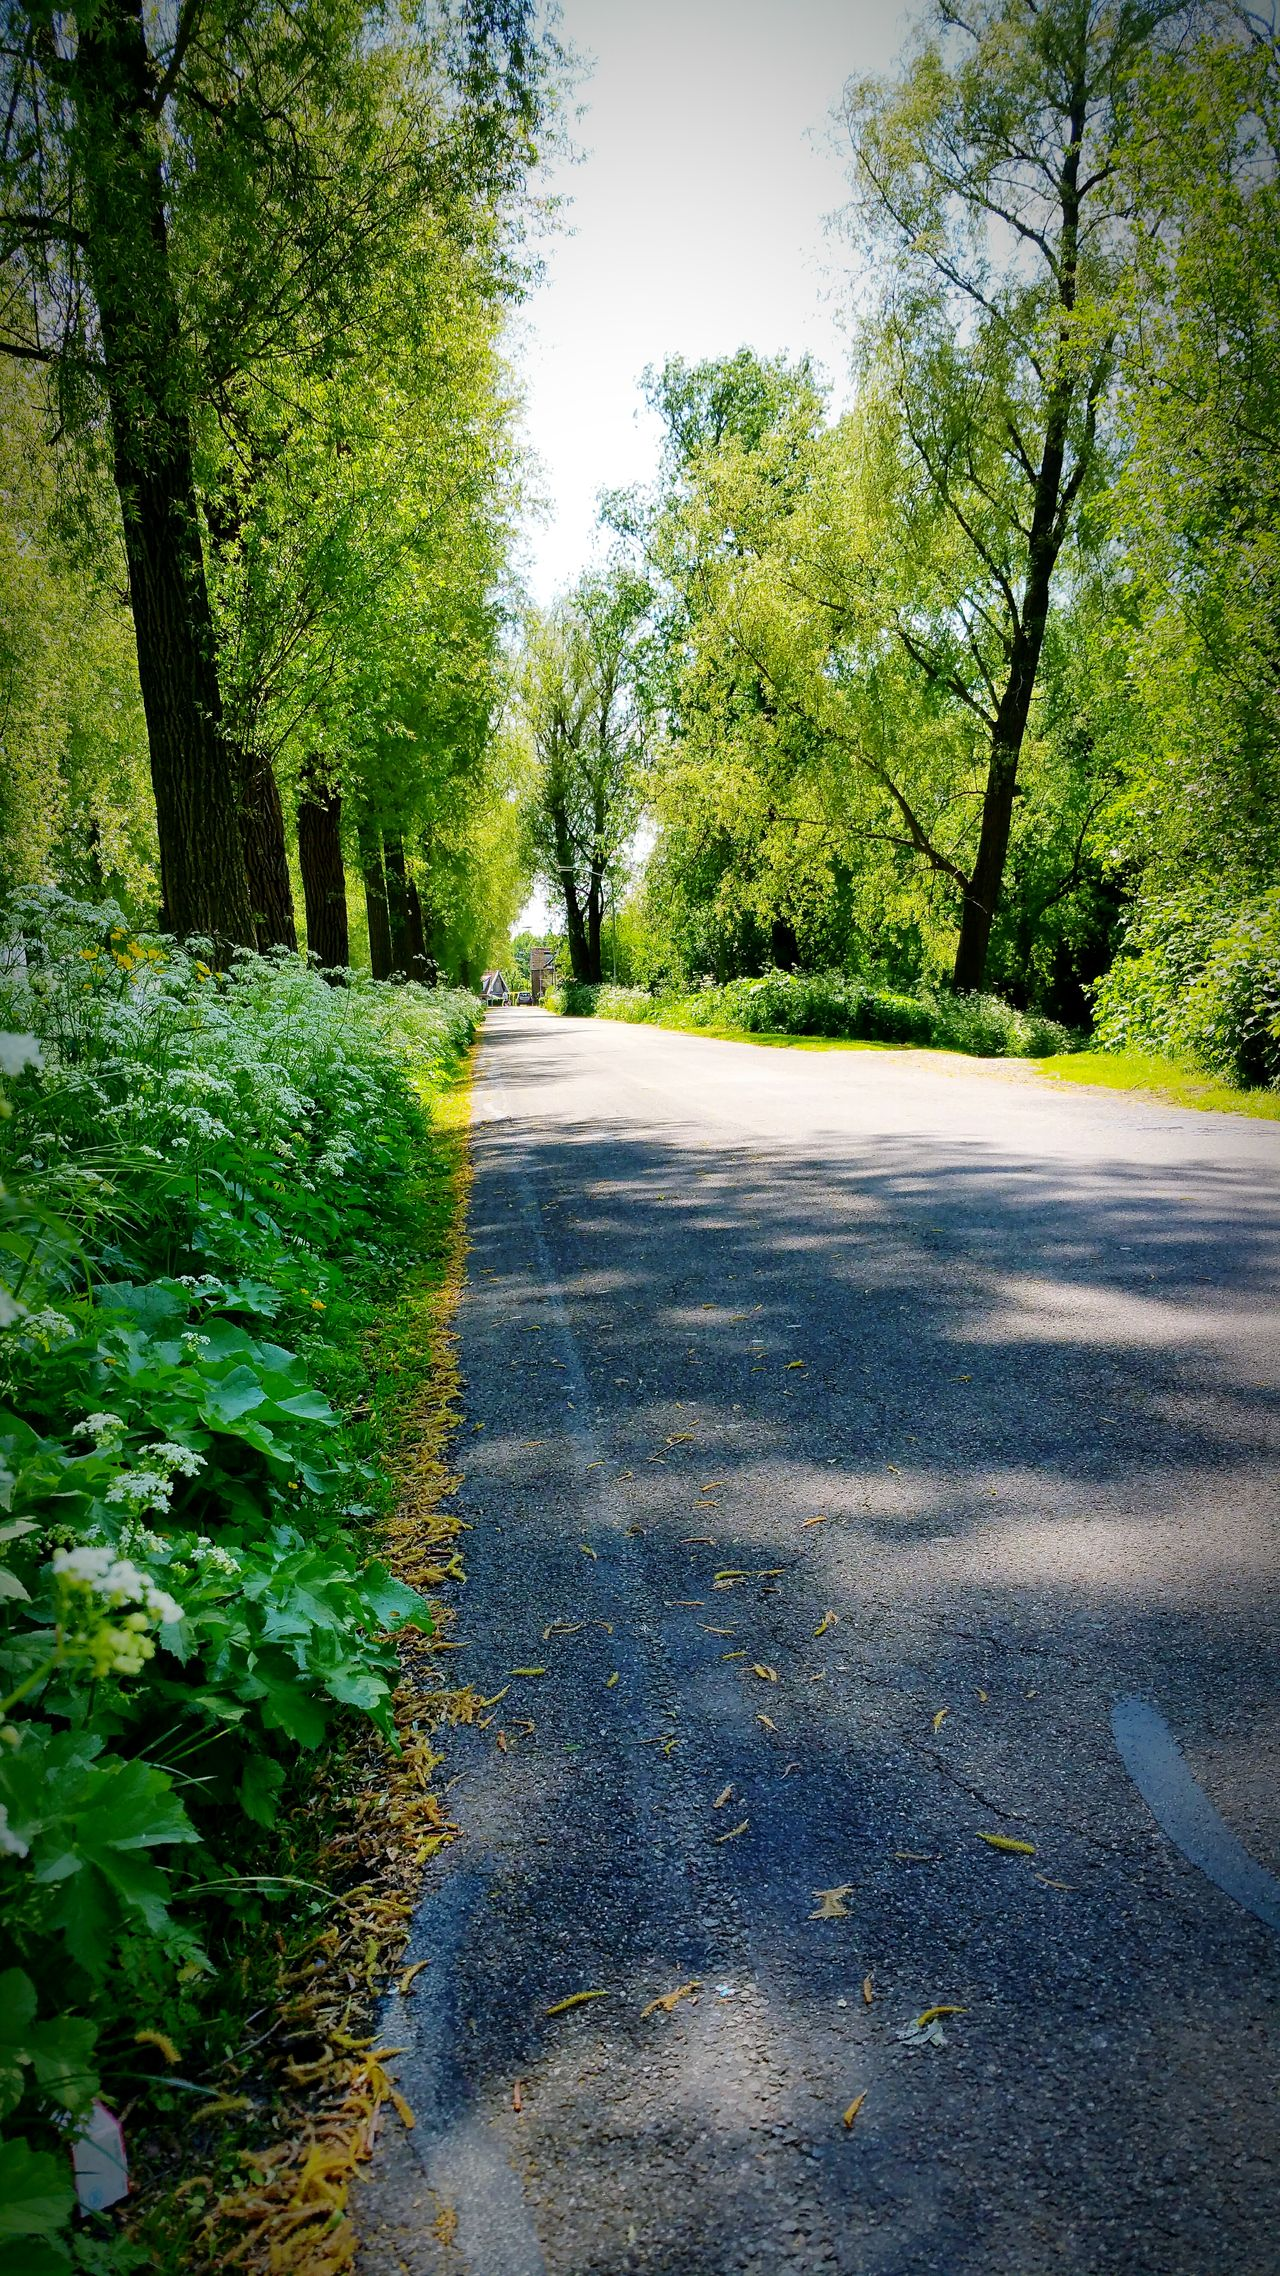 The Great Outdoors With Adobe Long Road... Green Nature Trees And Bushes Walking Home Dordrecht The Netherlands